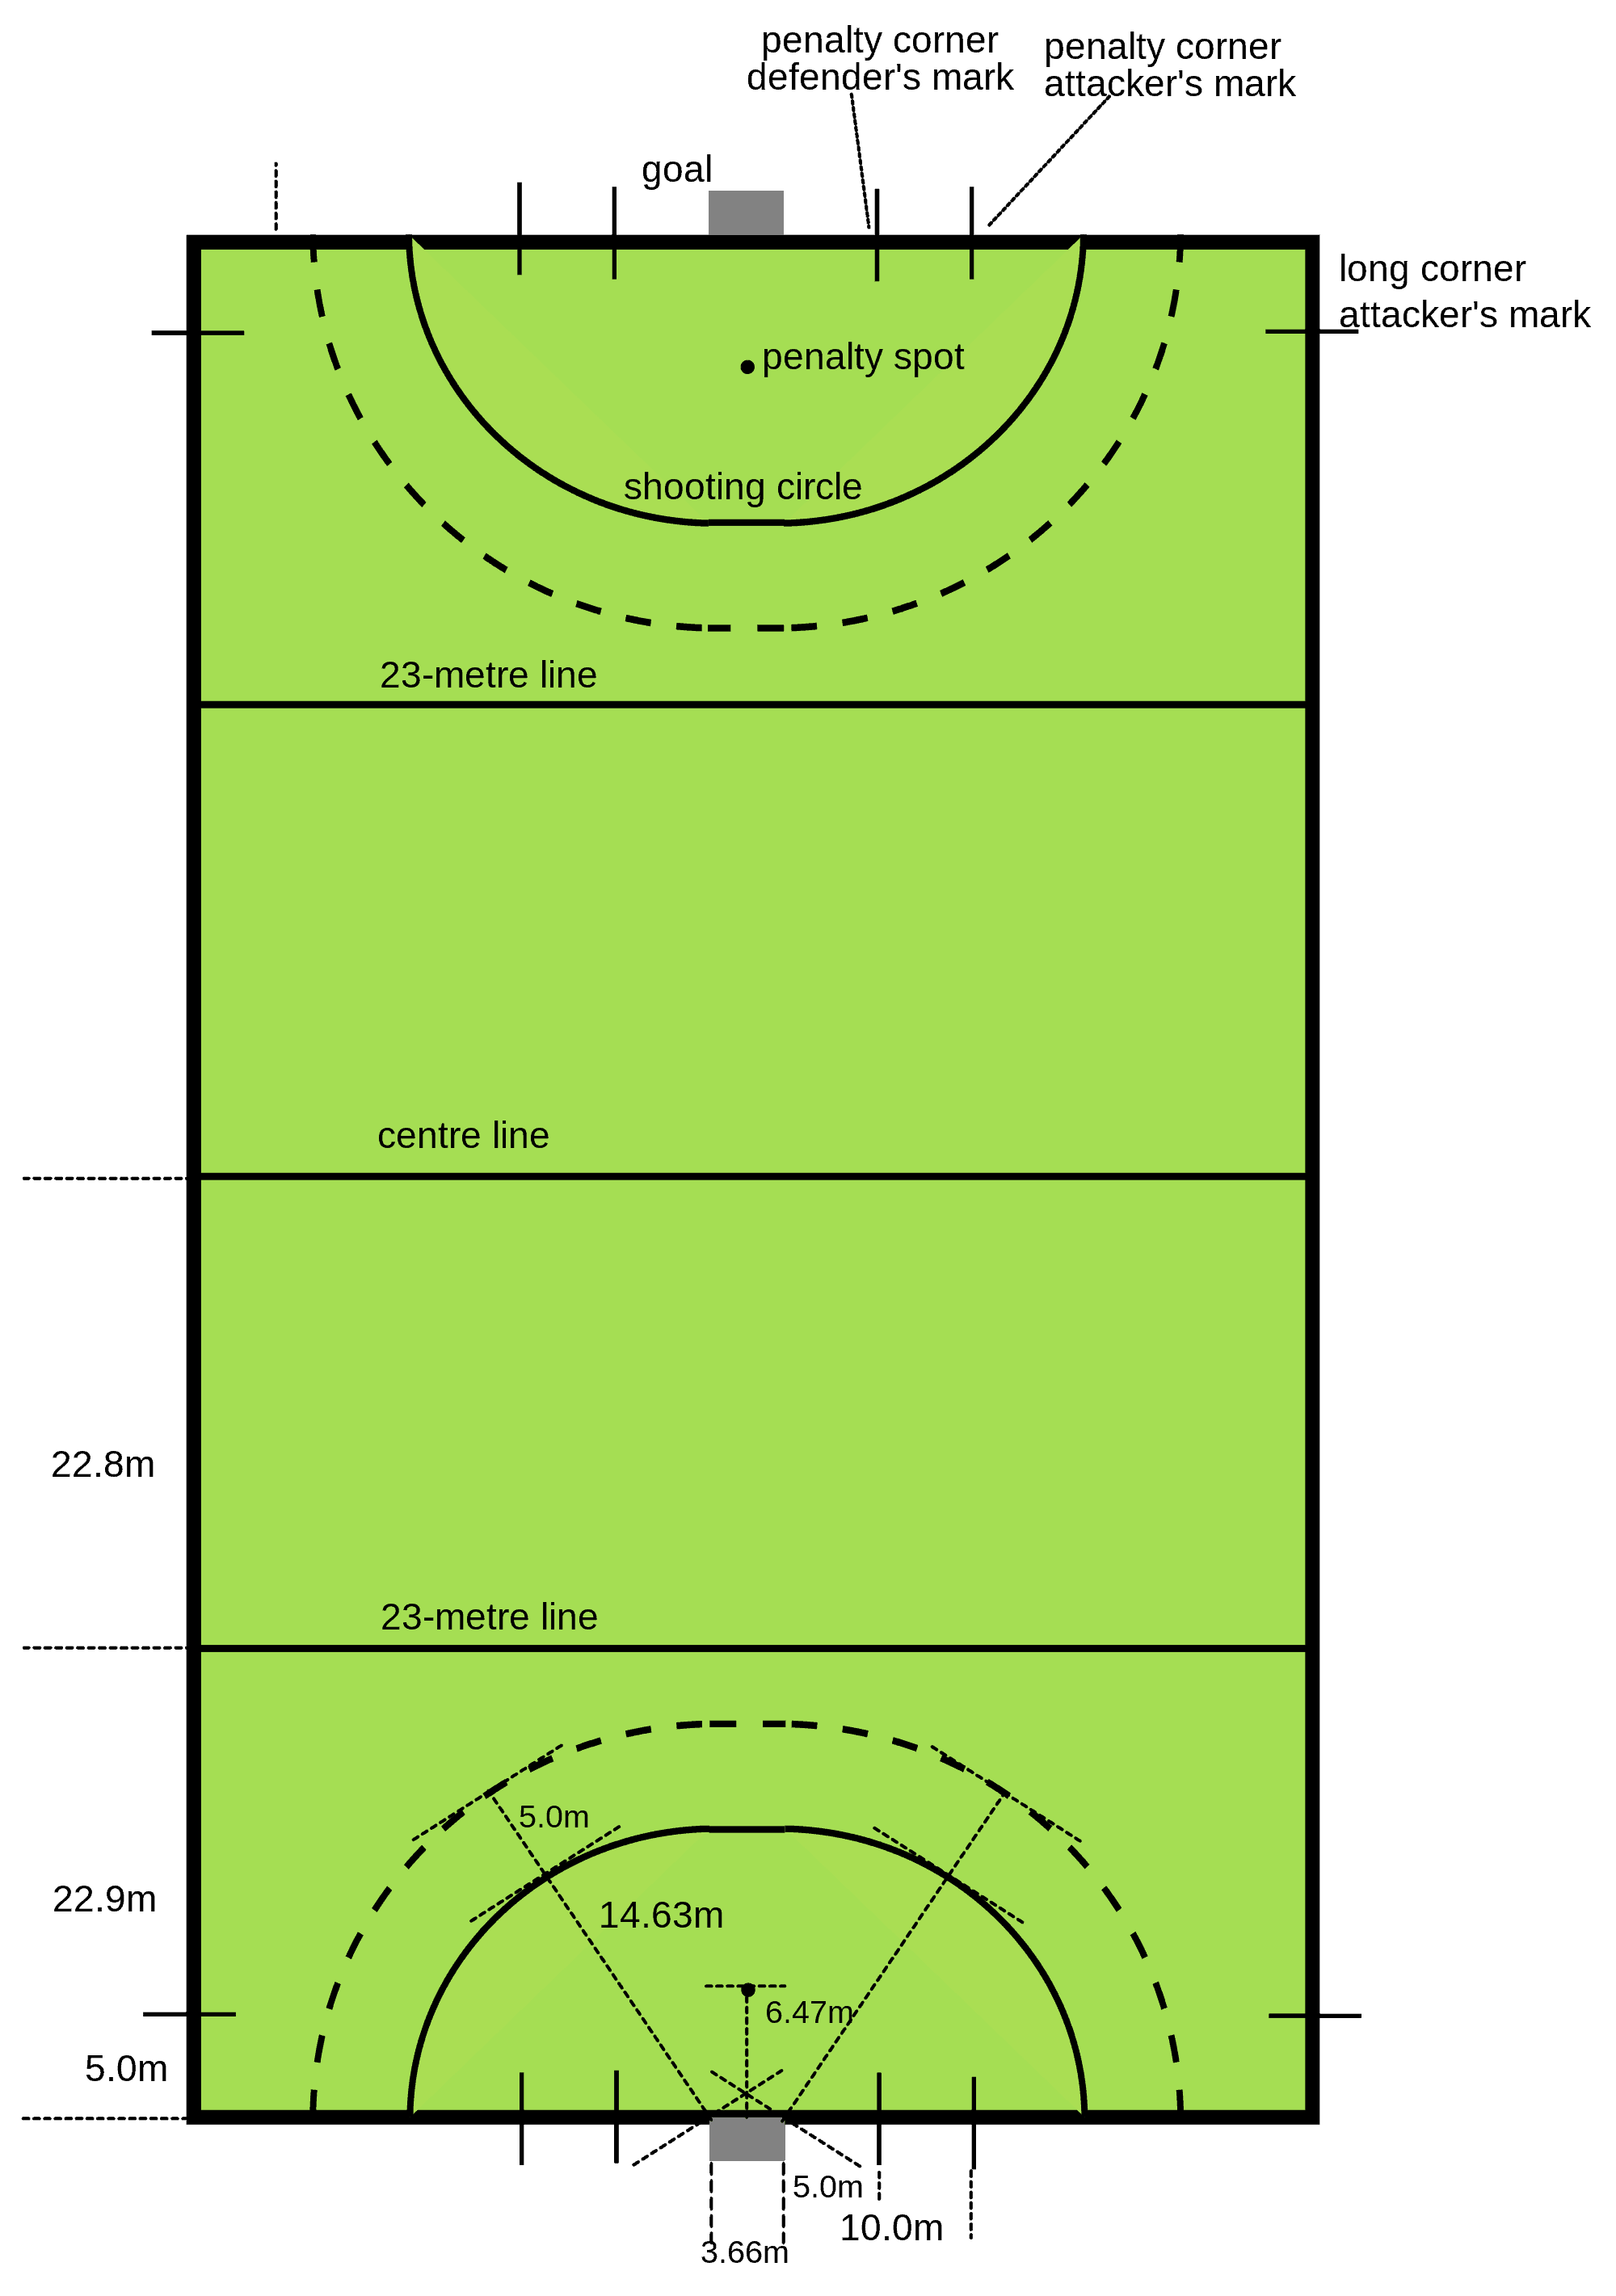 Field Hockey and Ice Hockey Dimensions and Layout